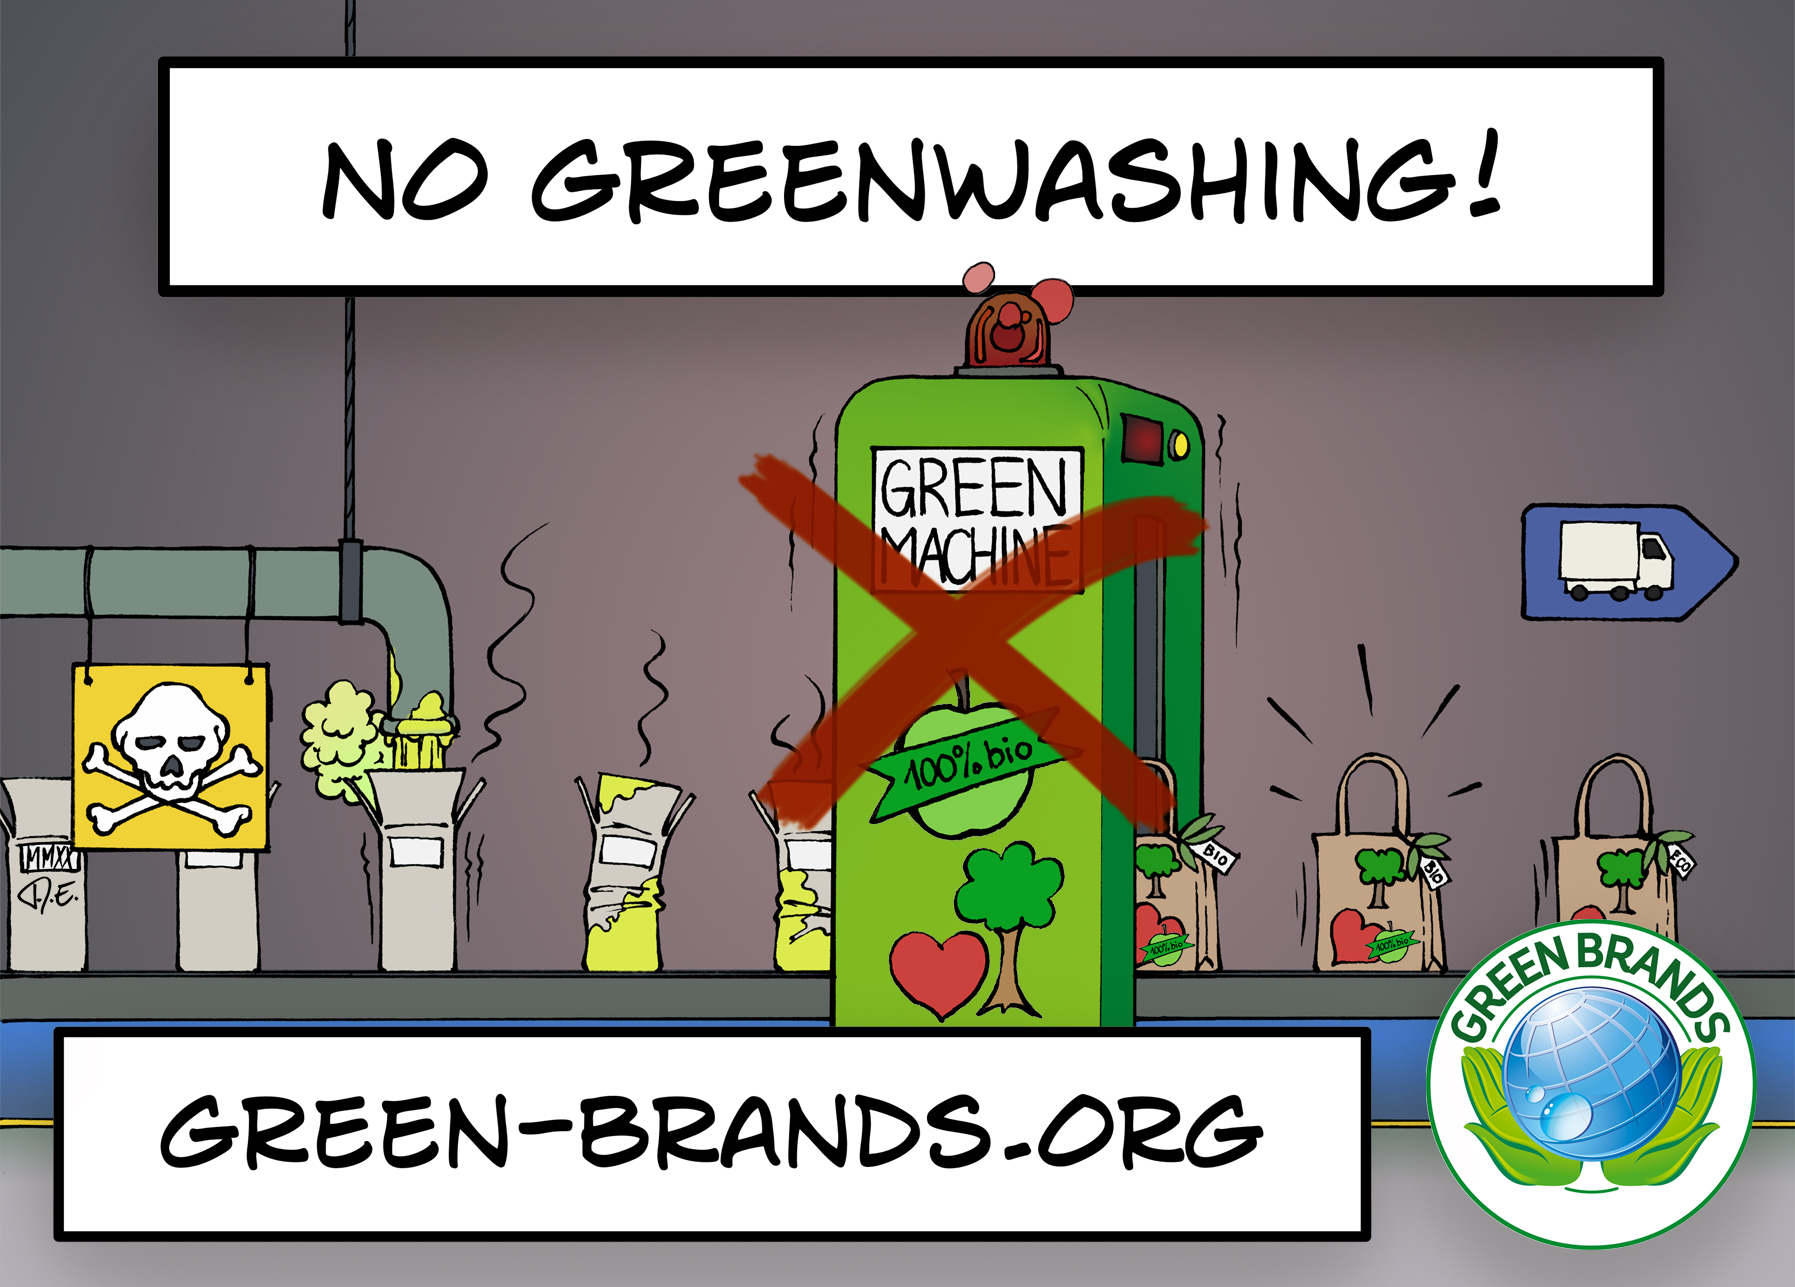 NO GREENWASHING